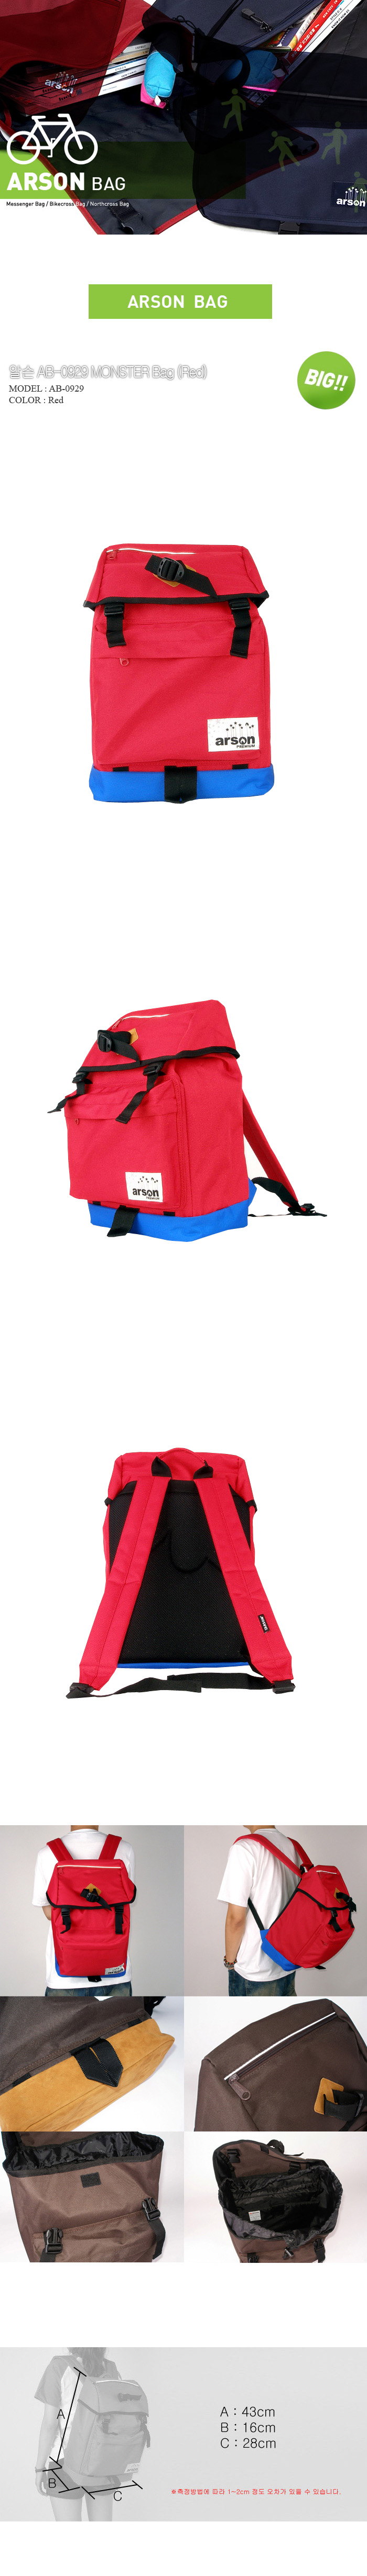 [ ARSON ] AB-0929 (Red)/Backpack School Bag